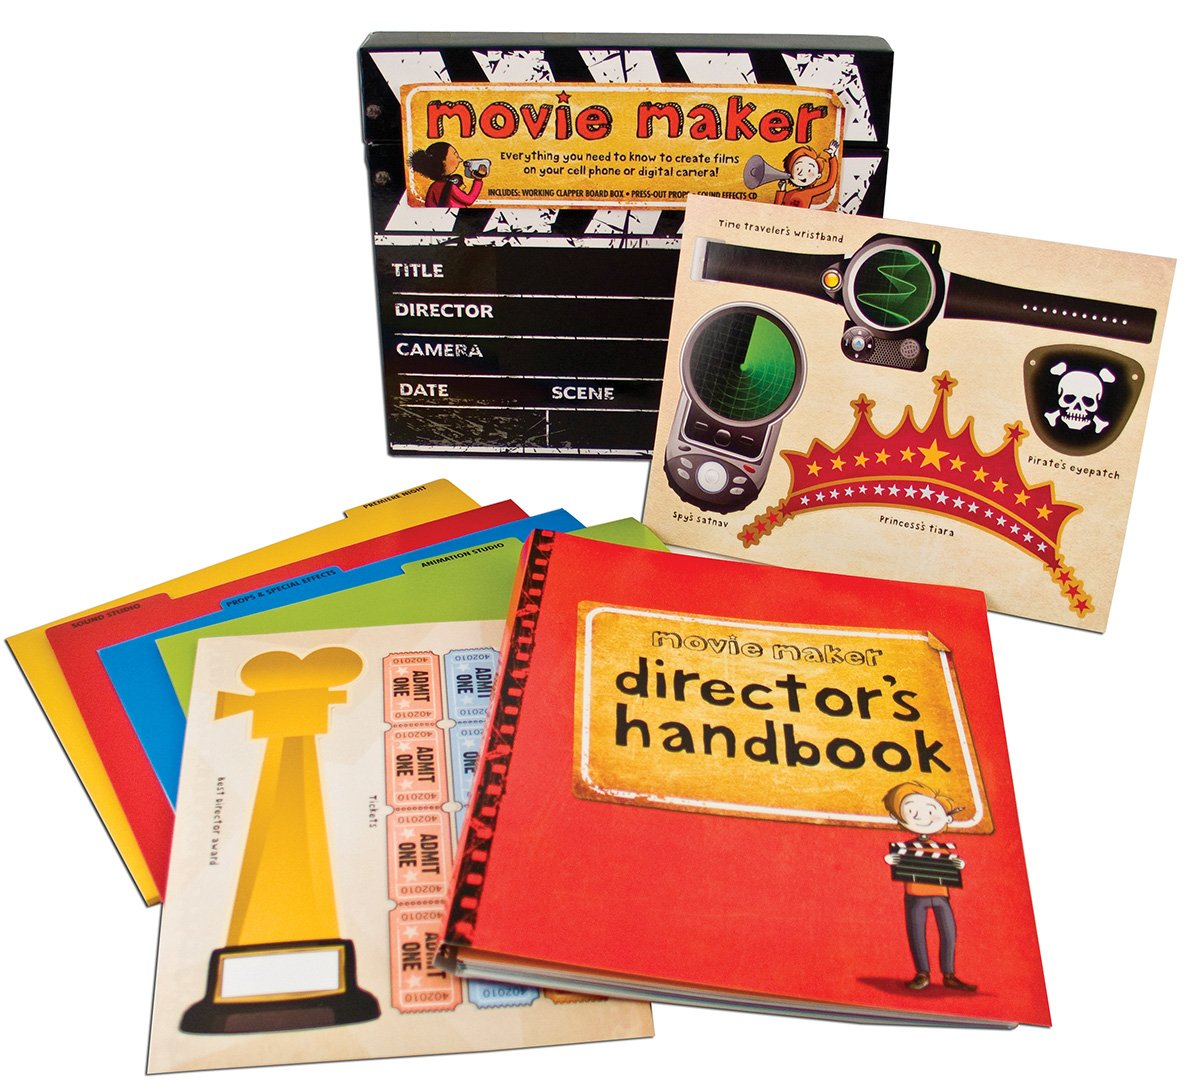 movie maker book report Banana split craftivity book report projectthis is a book report project that reviews the characteristics of fiction: plot, setting, main character, and supporting character the project can be used as a take home book report or a literacy center activity.